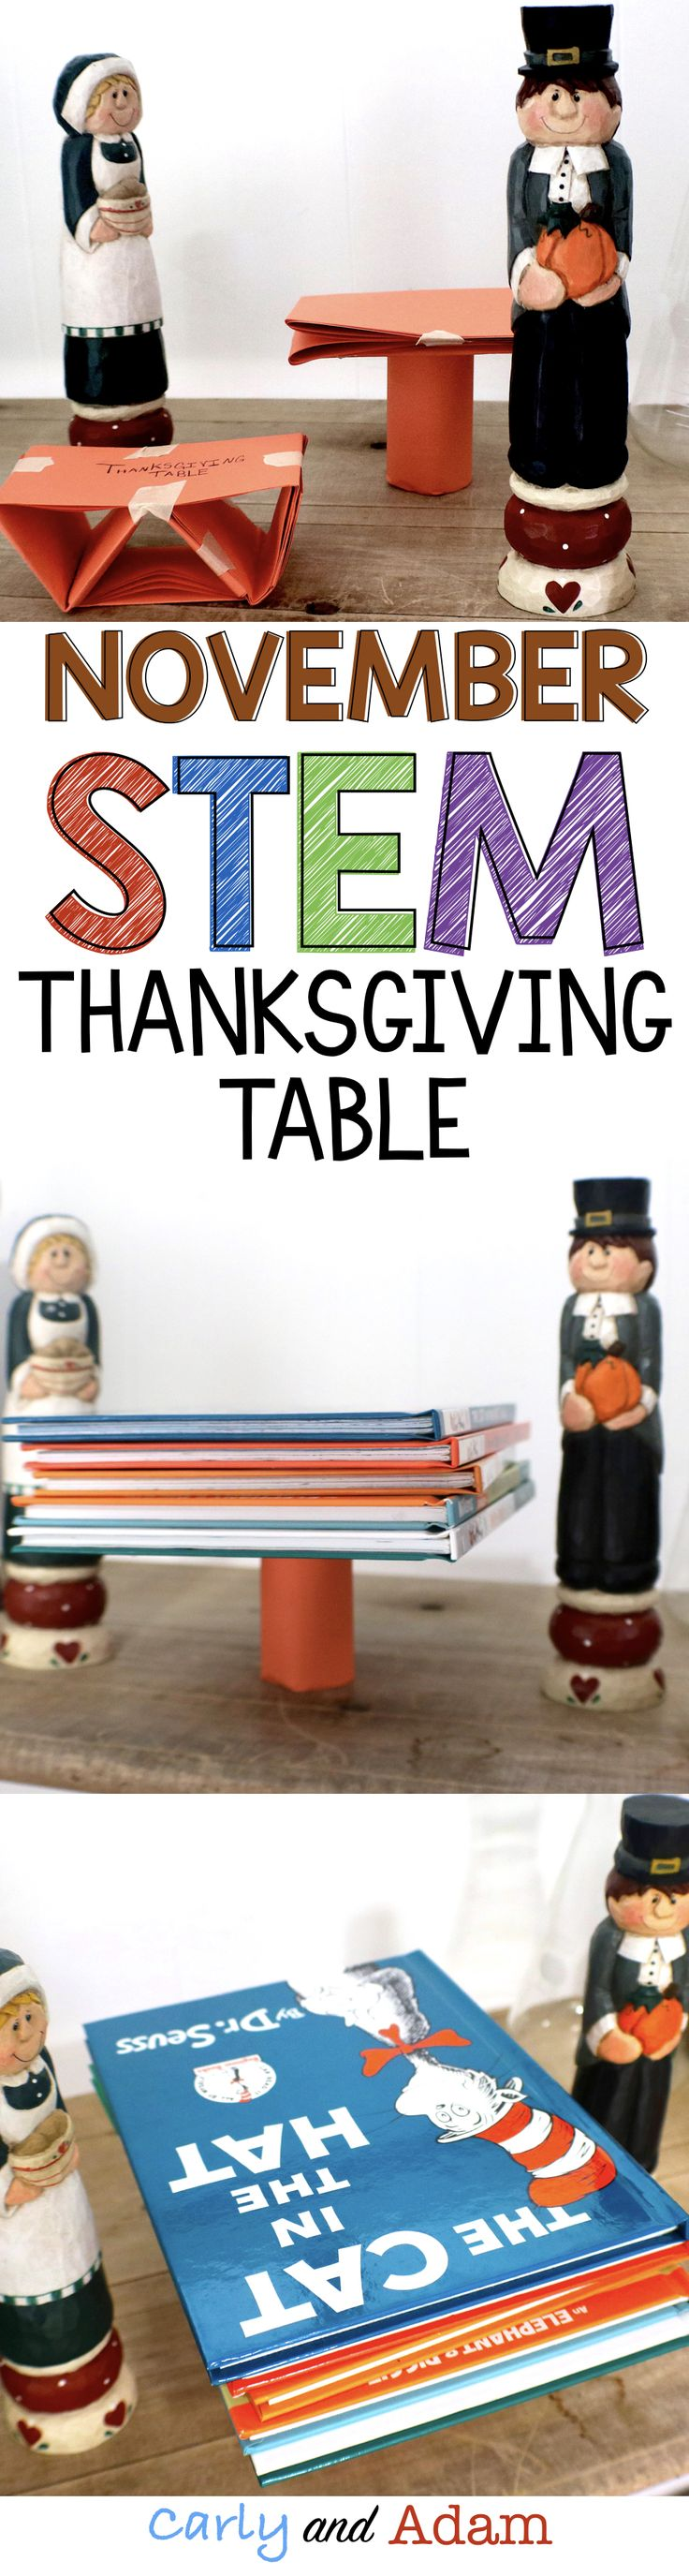 For this STEM activity students must build a table for Thanksgiving dinner out of paper. The table must be able to support a stack of books.